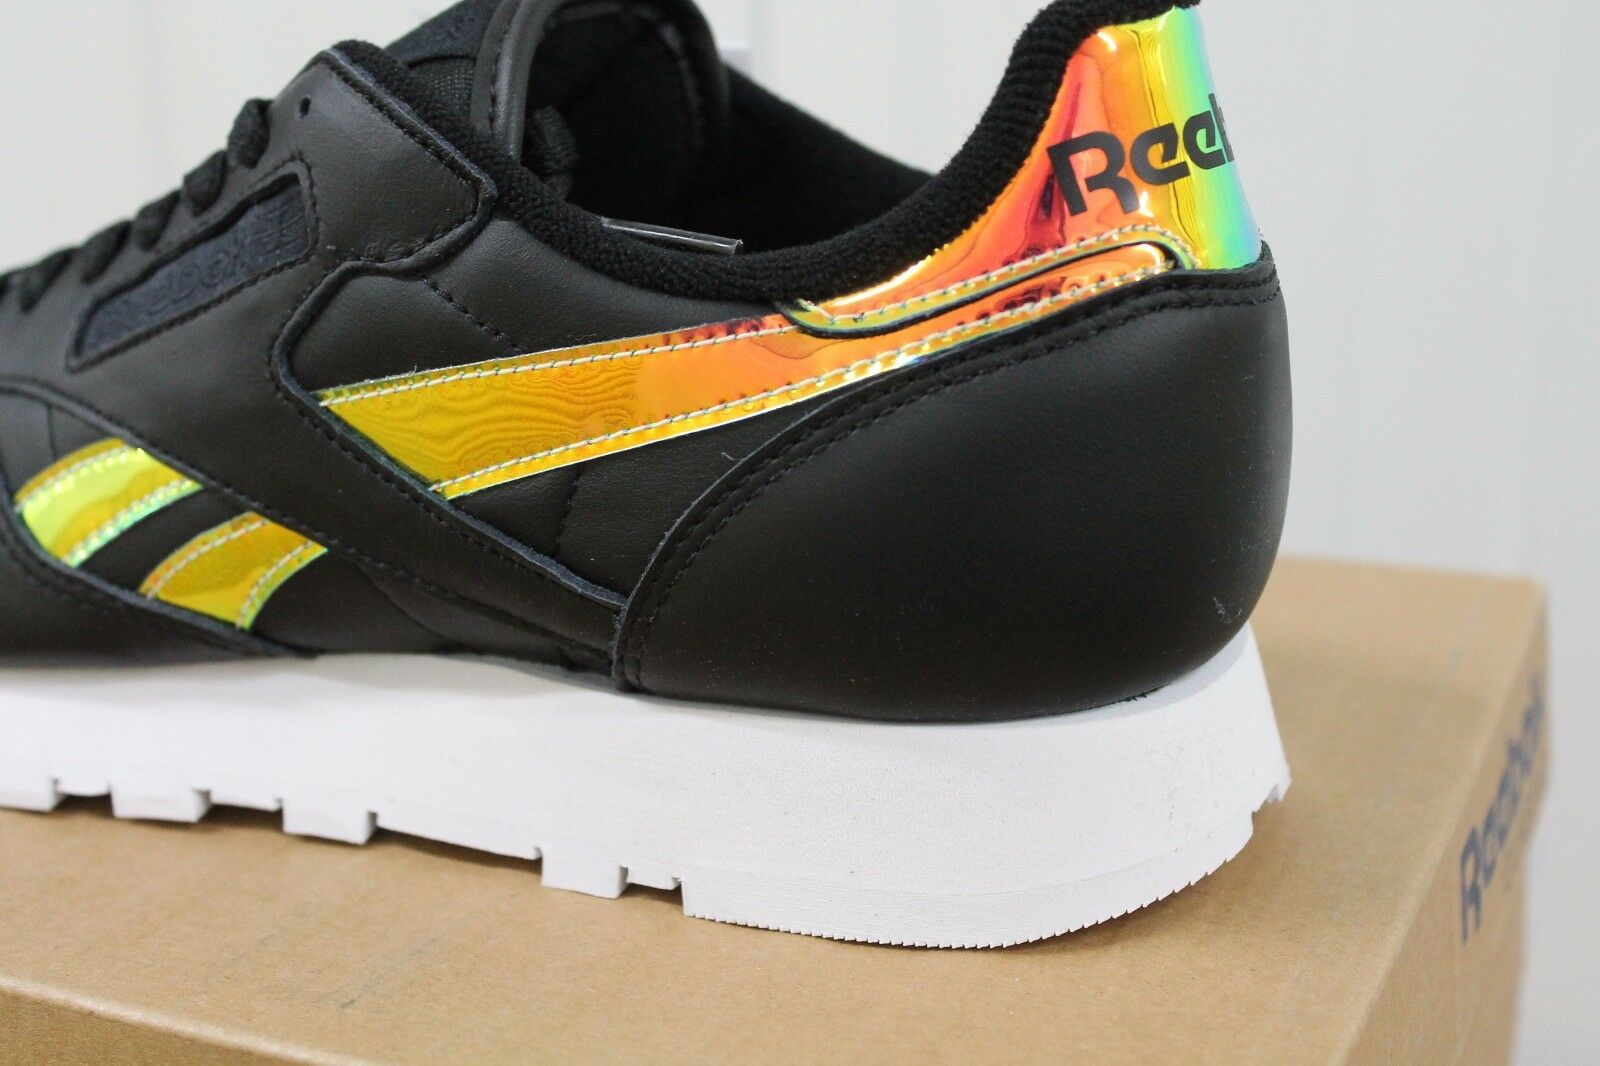 UNISEX REEBOK CL LEATHER RD BLACK CASUAL TRAINER BS5118 BNIB